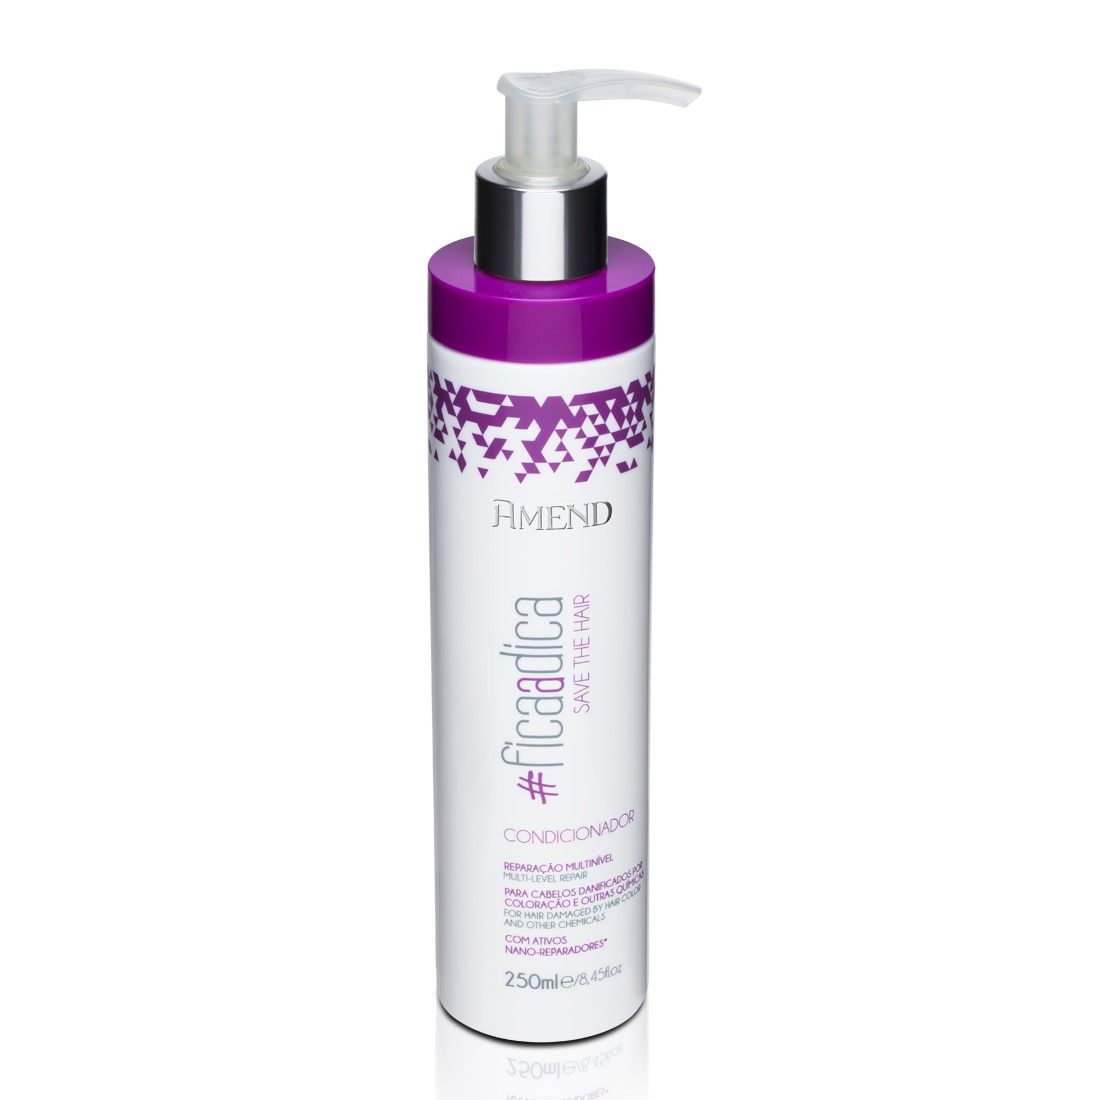 Amend #Ficaadica Save The Hair Condicionador 250ml